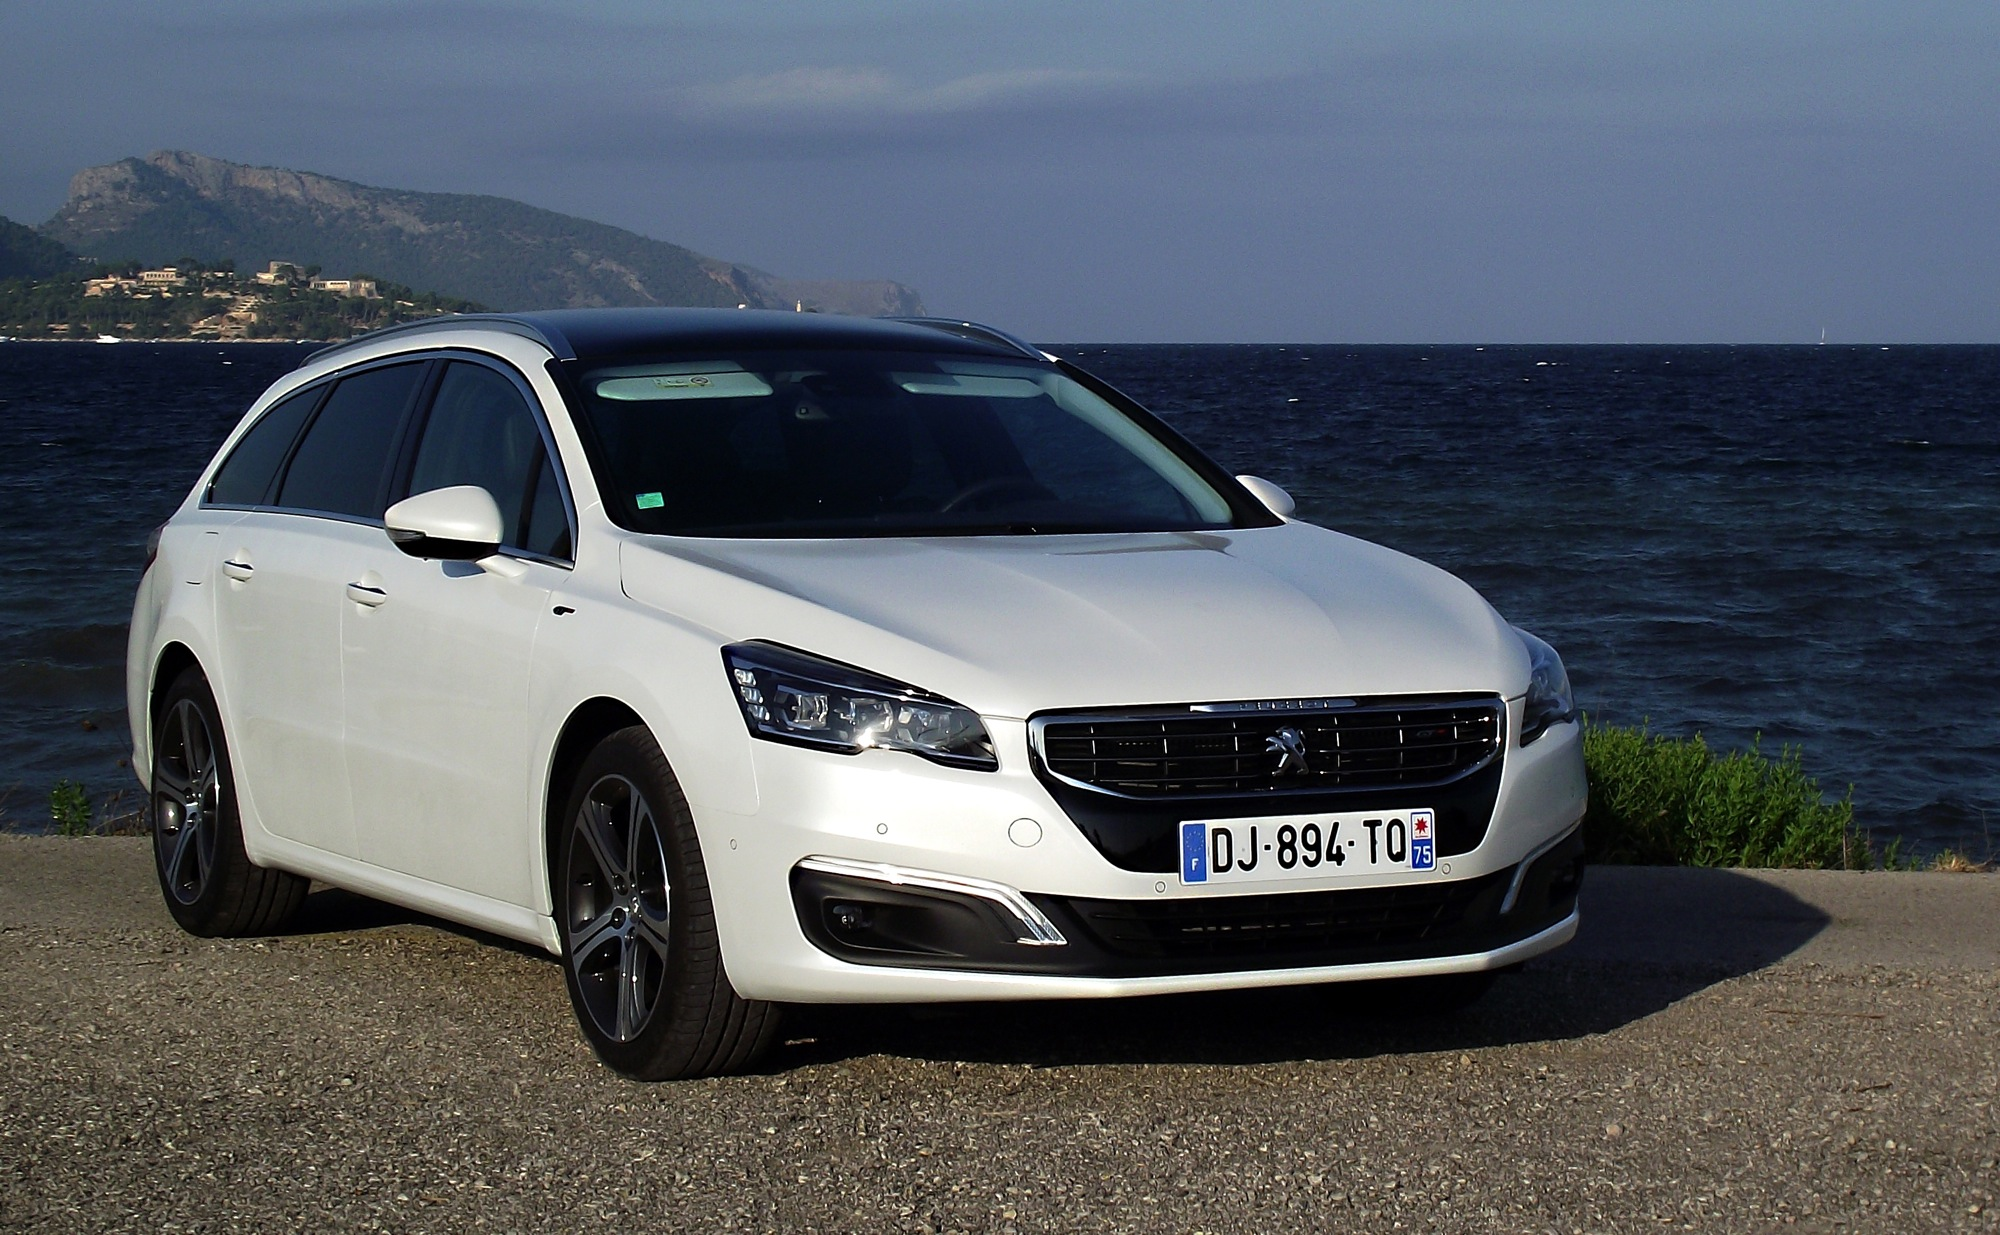 2014 peugeot 508 pictures information and specs auto. Black Bedroom Furniture Sets. Home Design Ideas